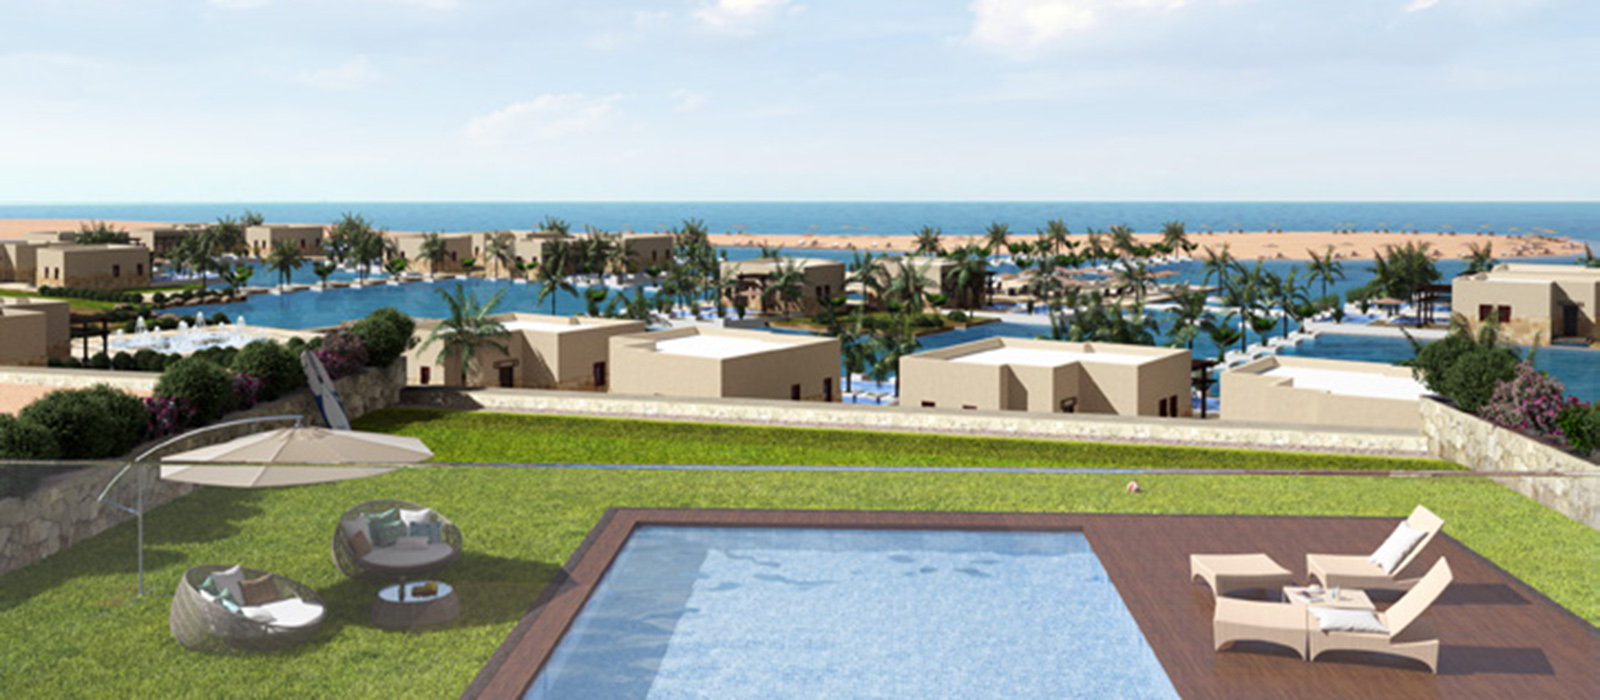 Fanadir Bay,El Gouna,Egypt,3 Bedrooms Bedrooms,4 BathroomsBathrooms,Development - Townhouse,Fanadir Bay,1041